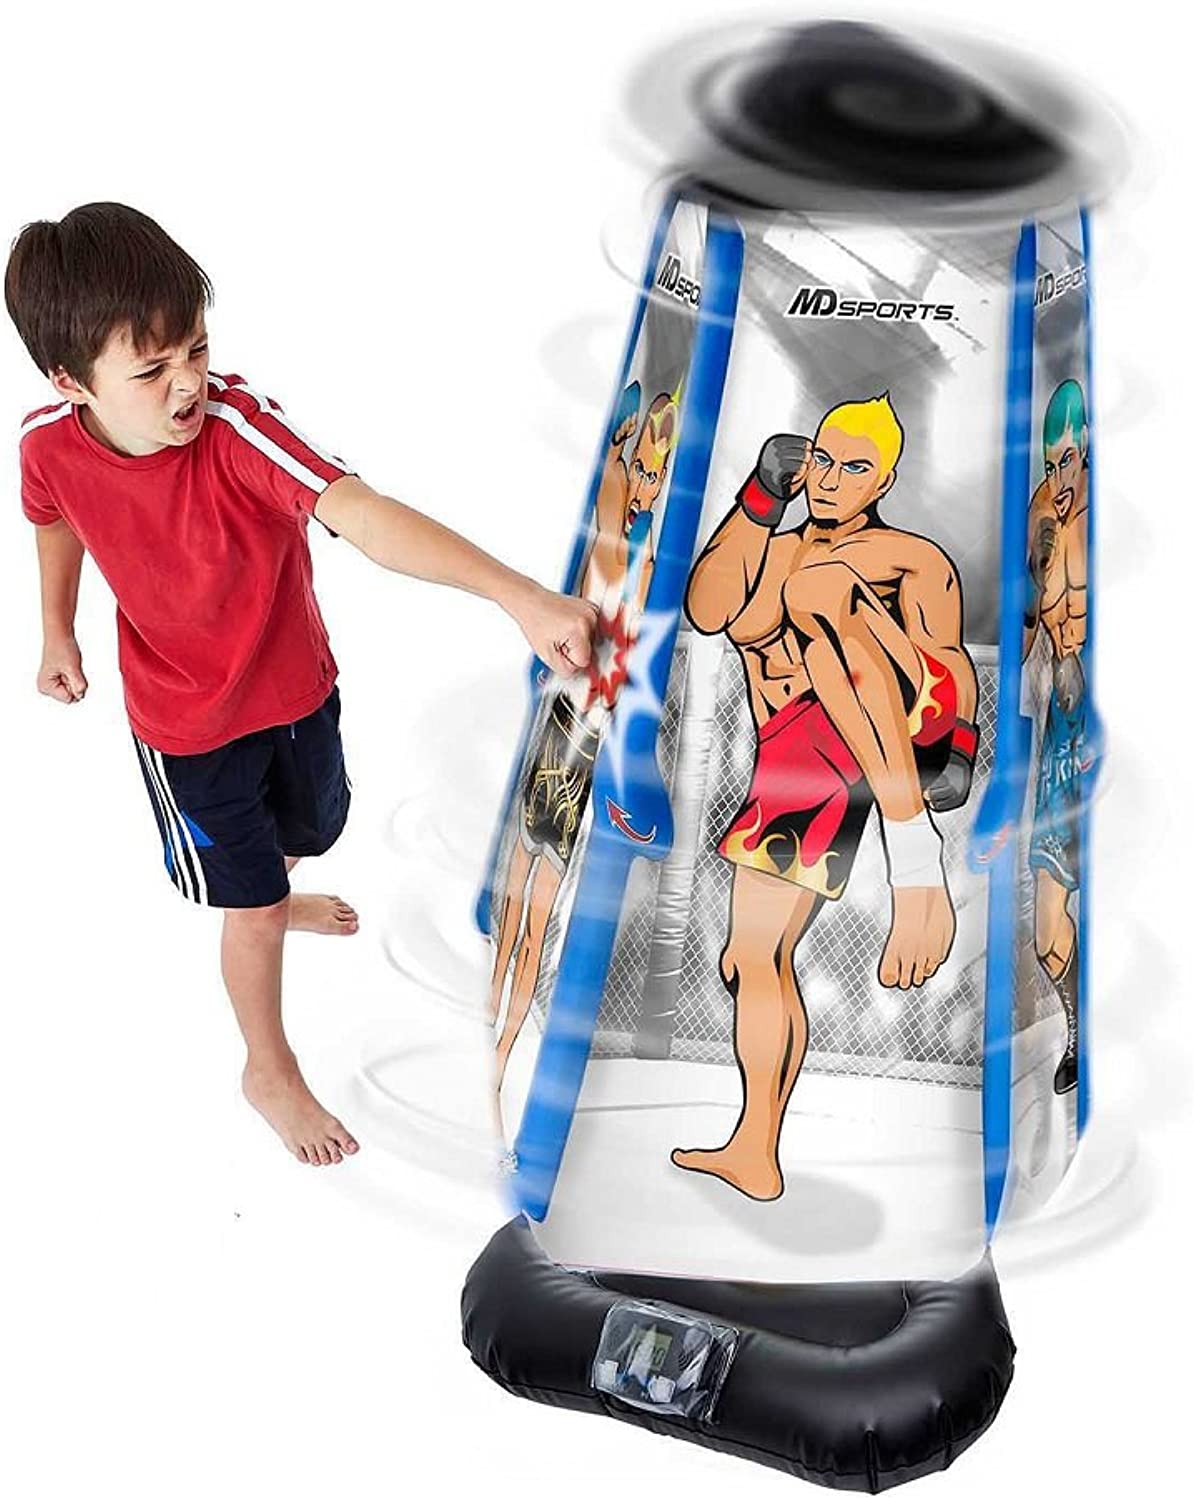 Jumbo Size Cage Fighter Game